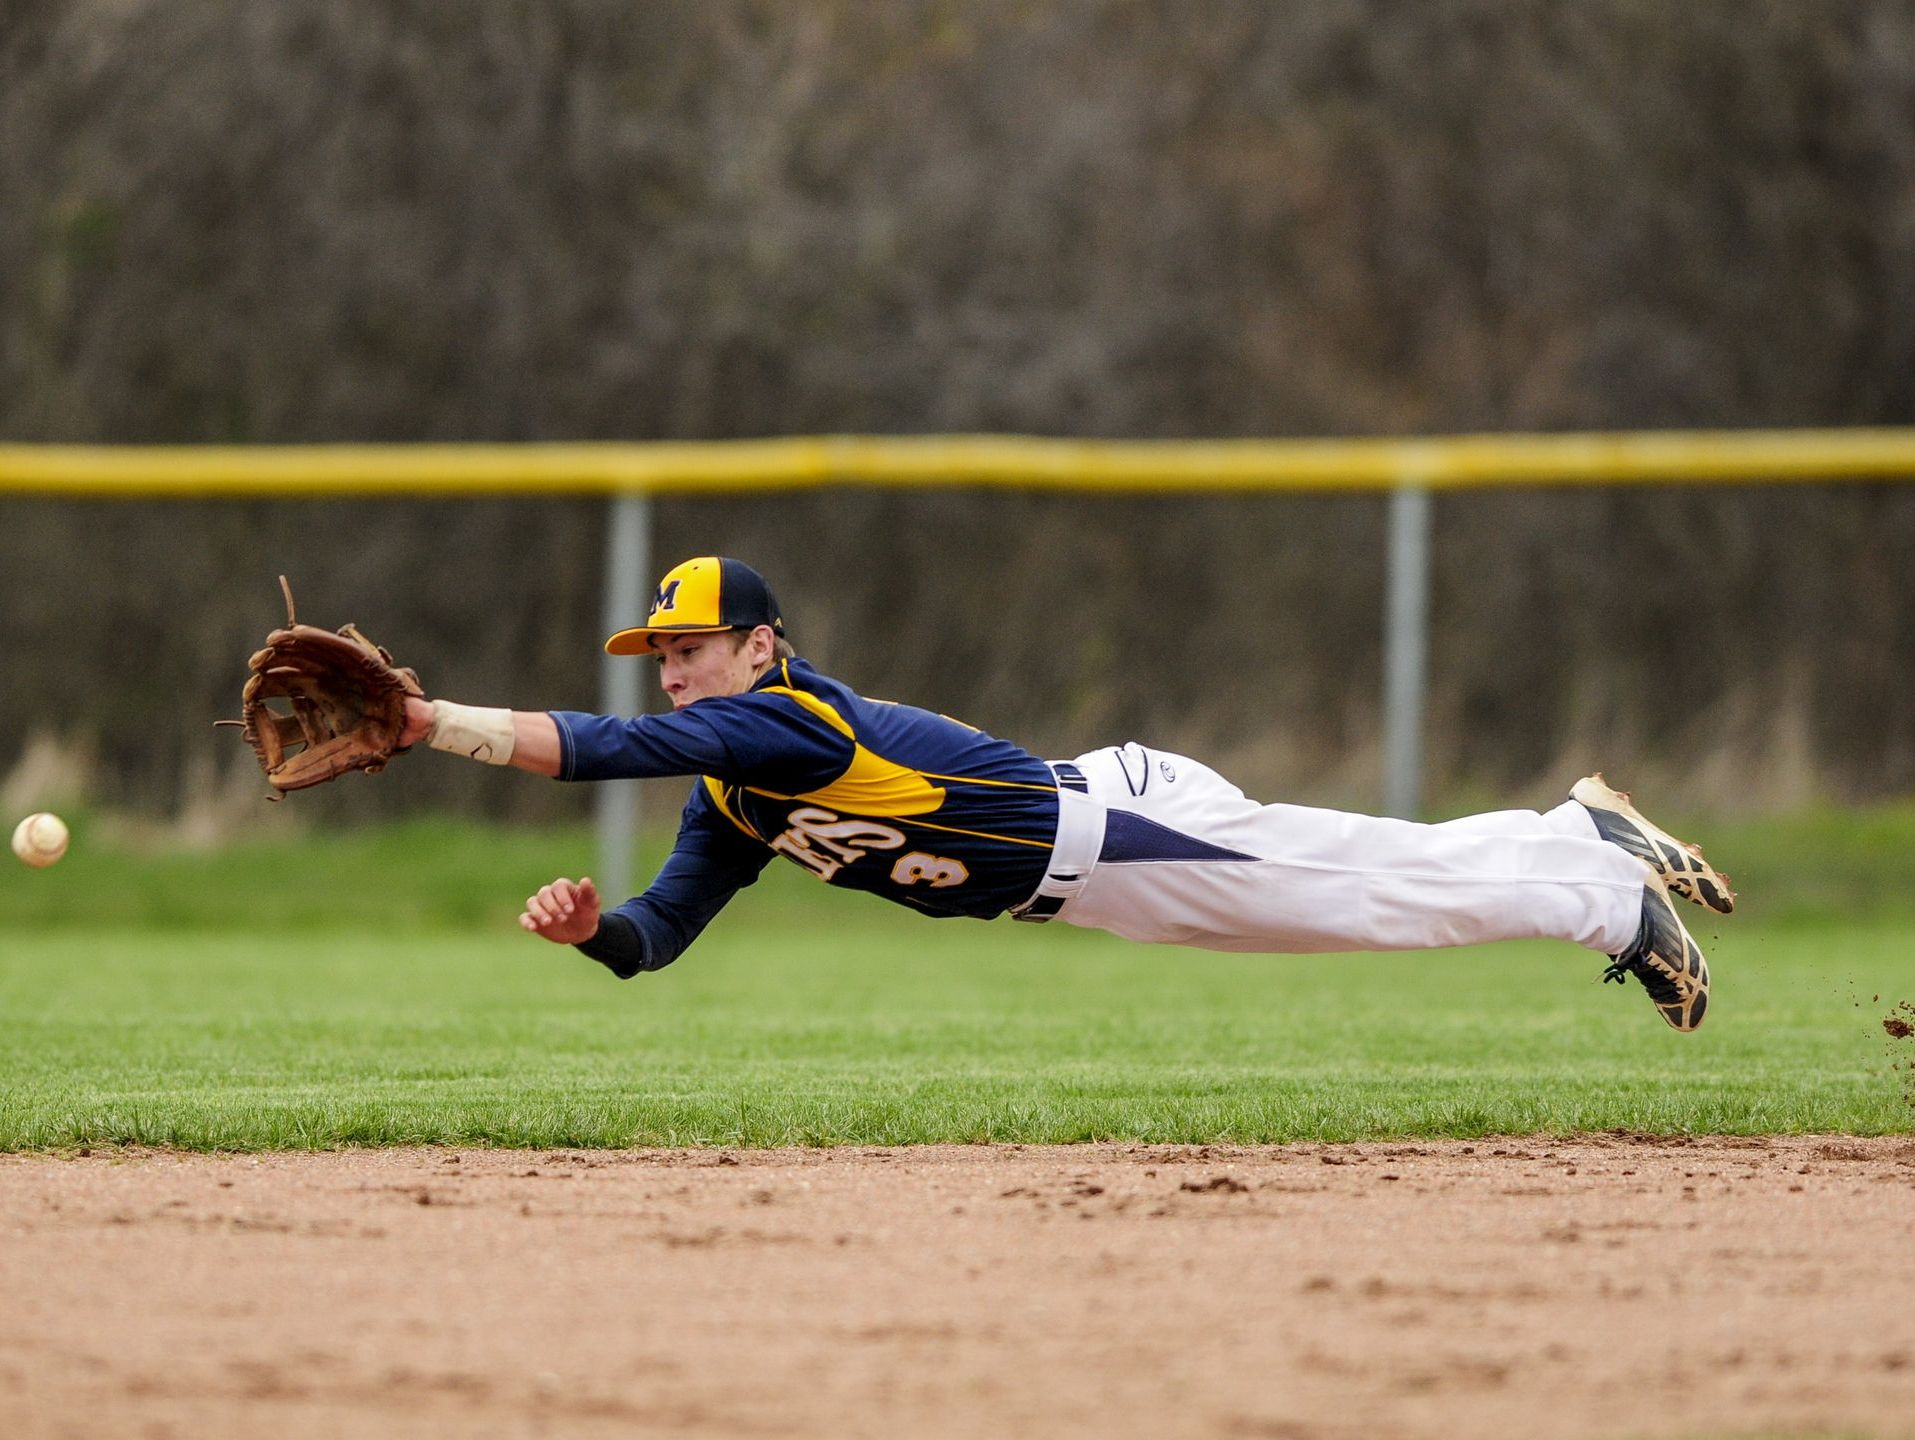 Memphis' Dillon Mitchell leaps for the ball but narrowly misses during a baseball game Thursday, April 28, 2016 at Armada High School.